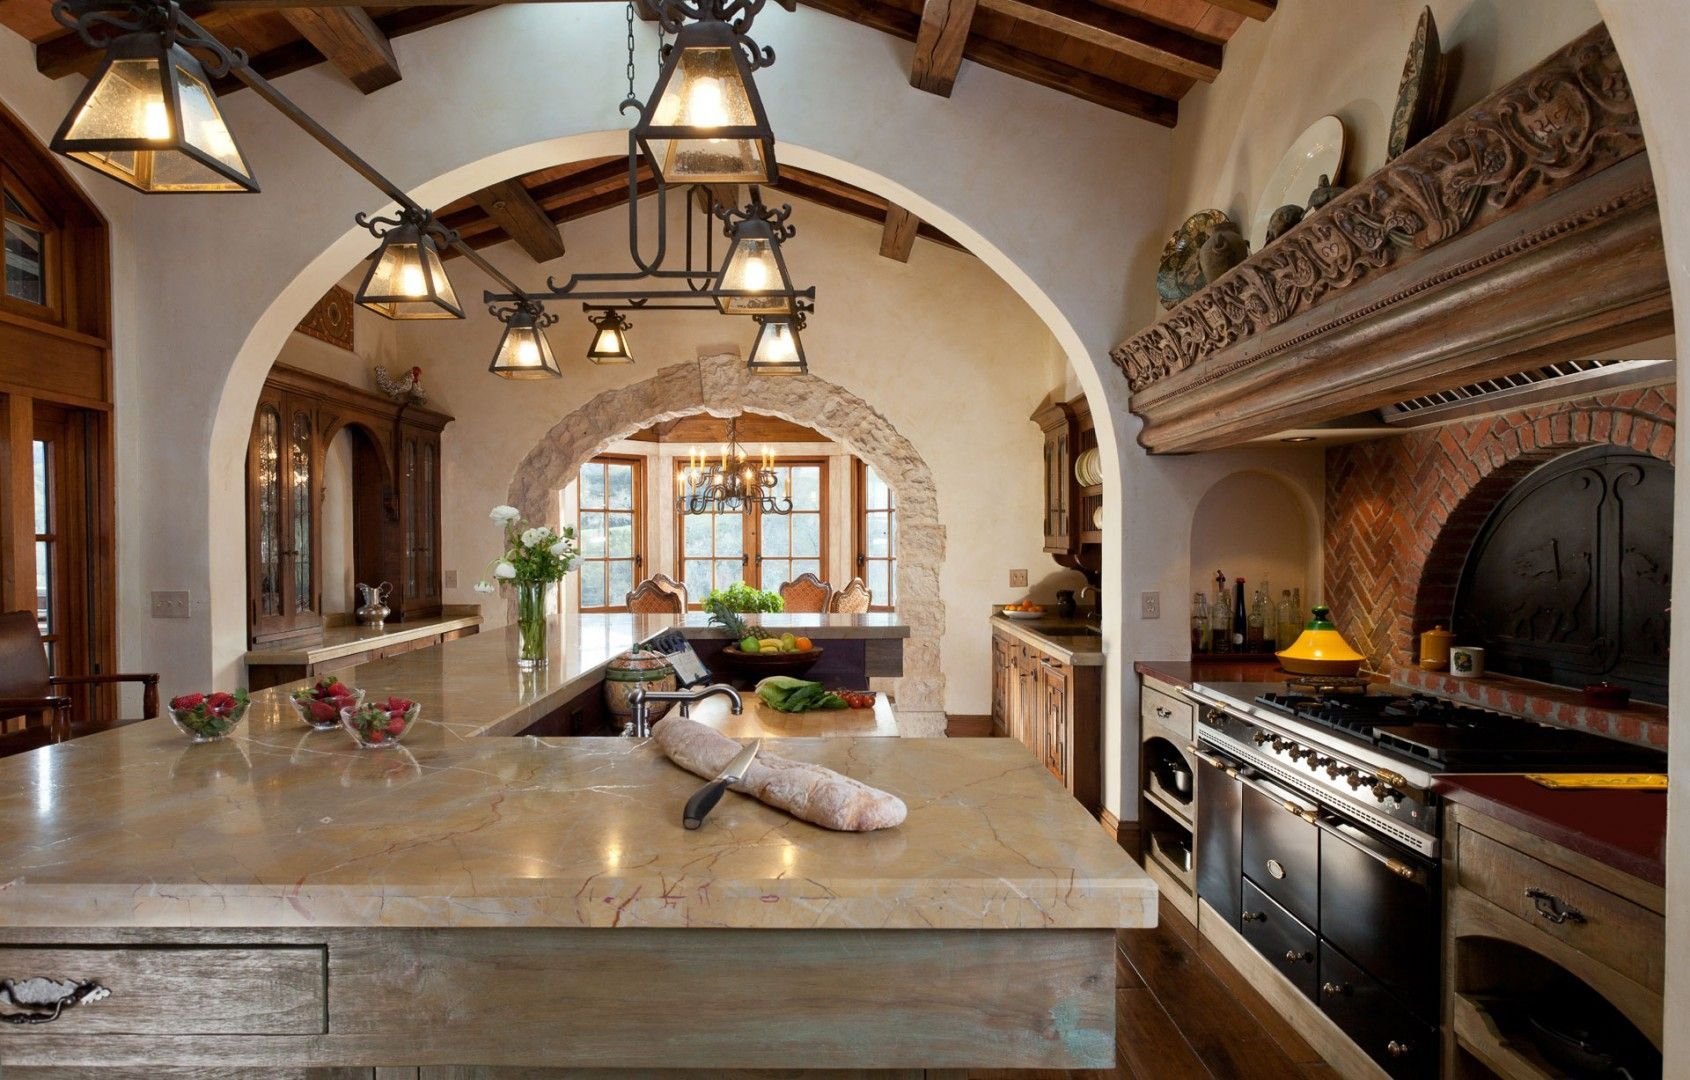 Spanish Colonial Kitchens A Little Dark But Love The